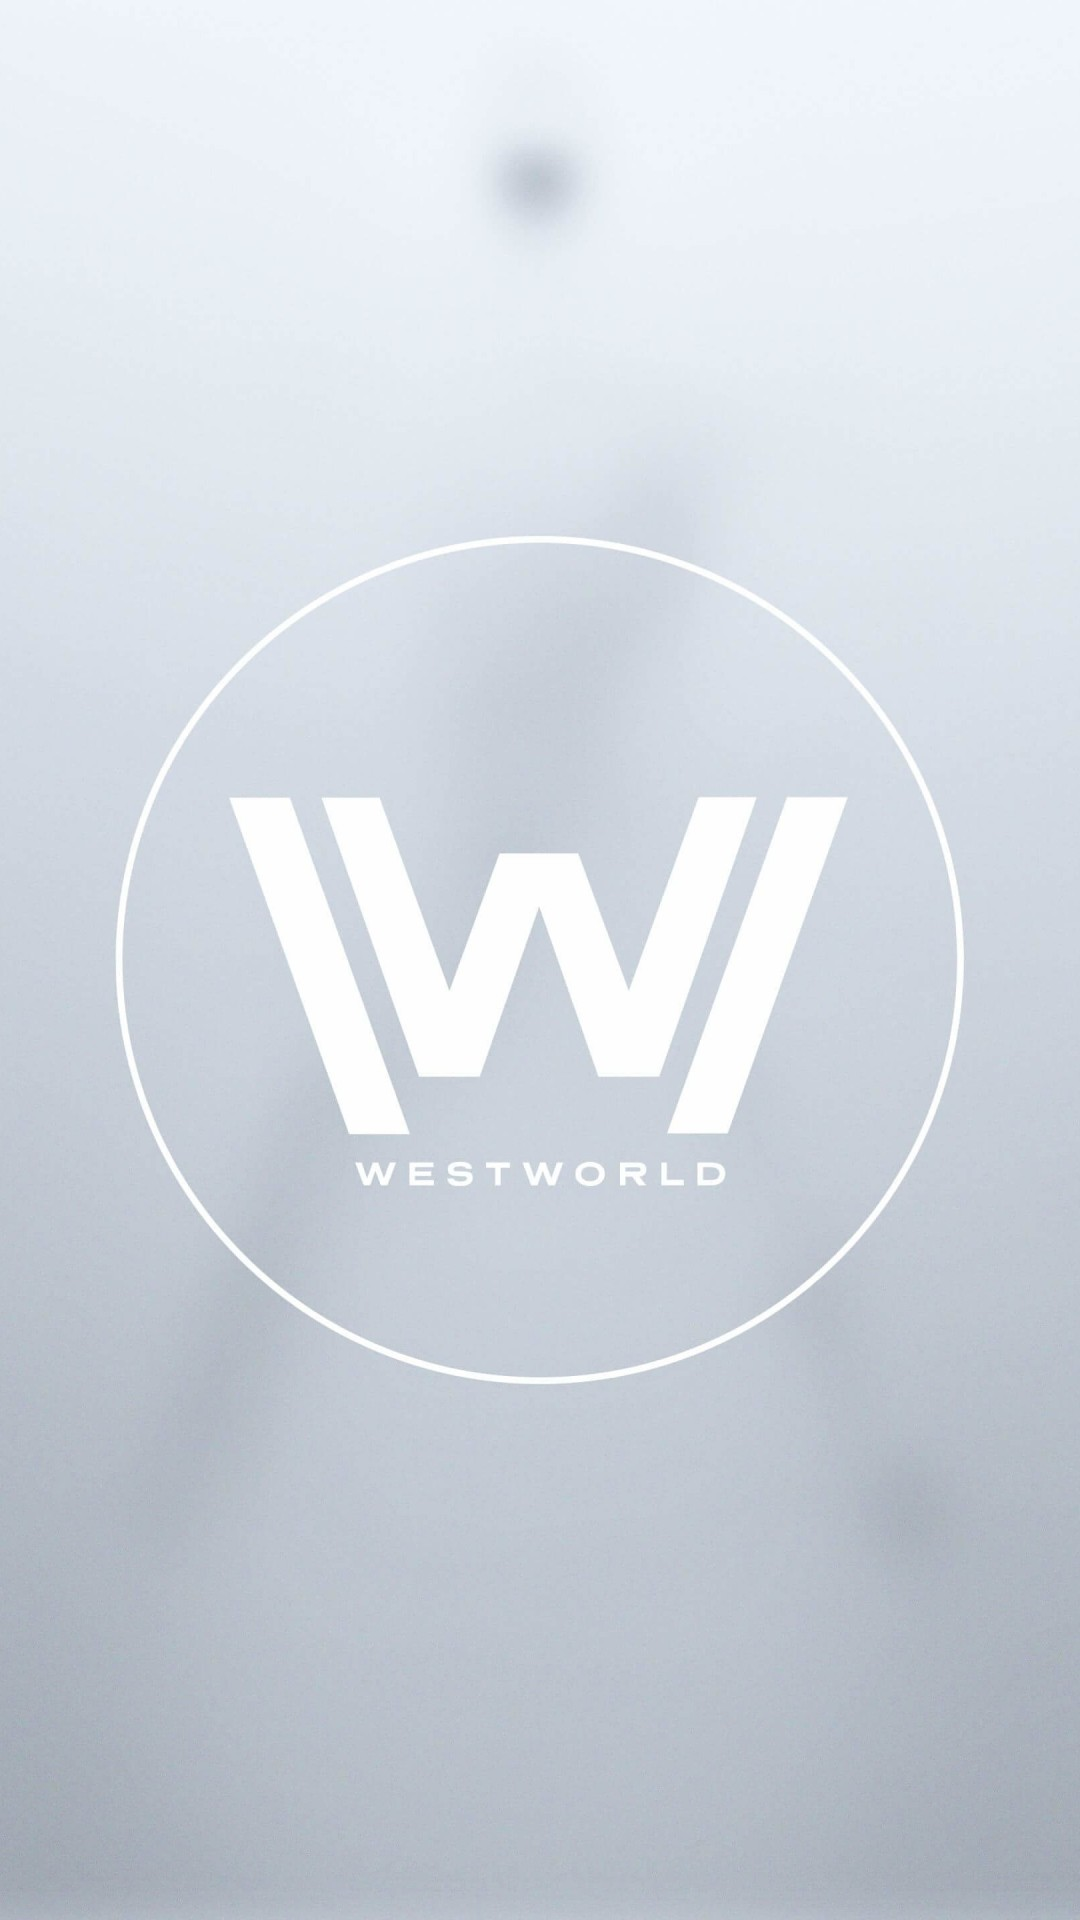 Westworld Logo Wallpaper for LG G2